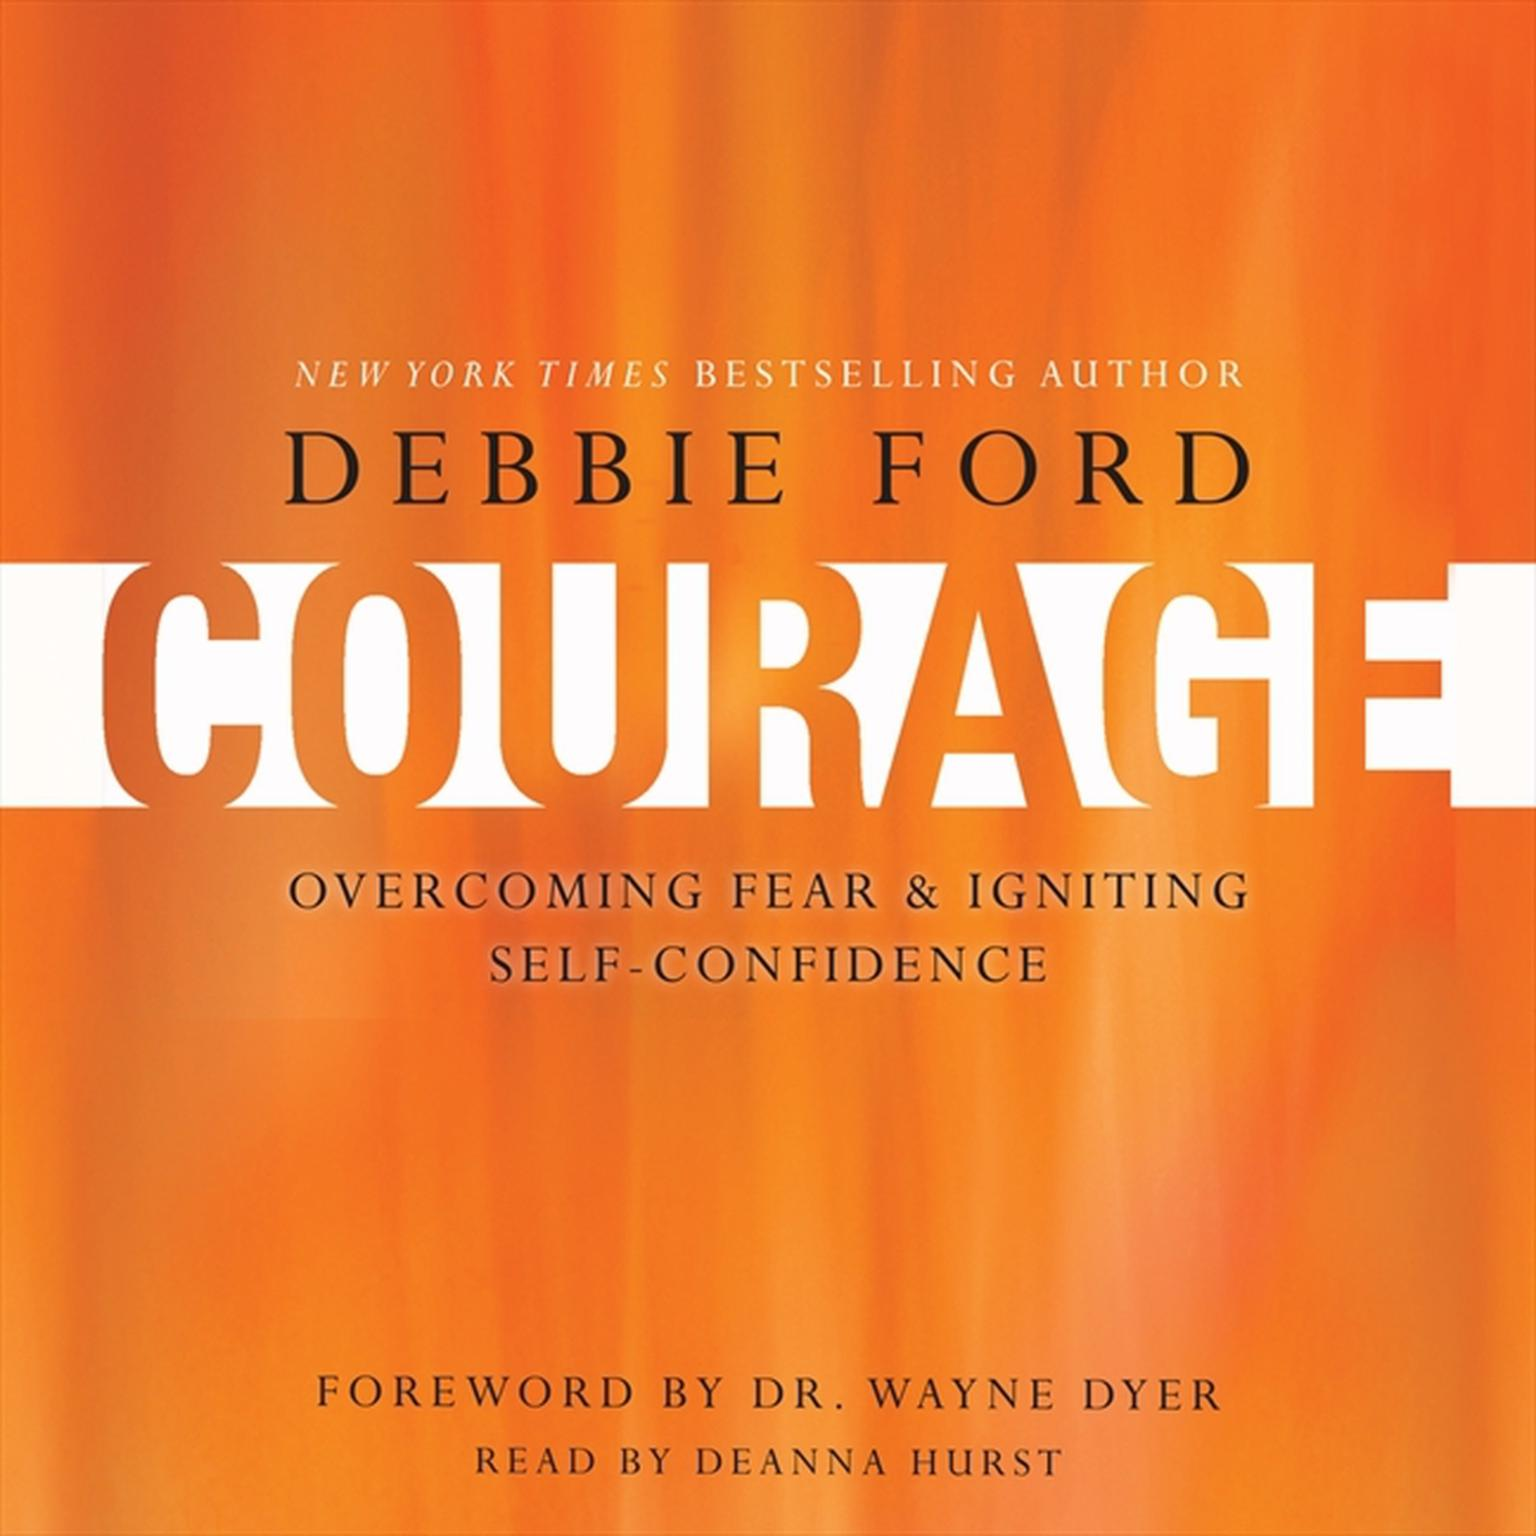 Printable Courage: Overcoming Fear and Igniting Self-Confidence Audiobook Cover Art